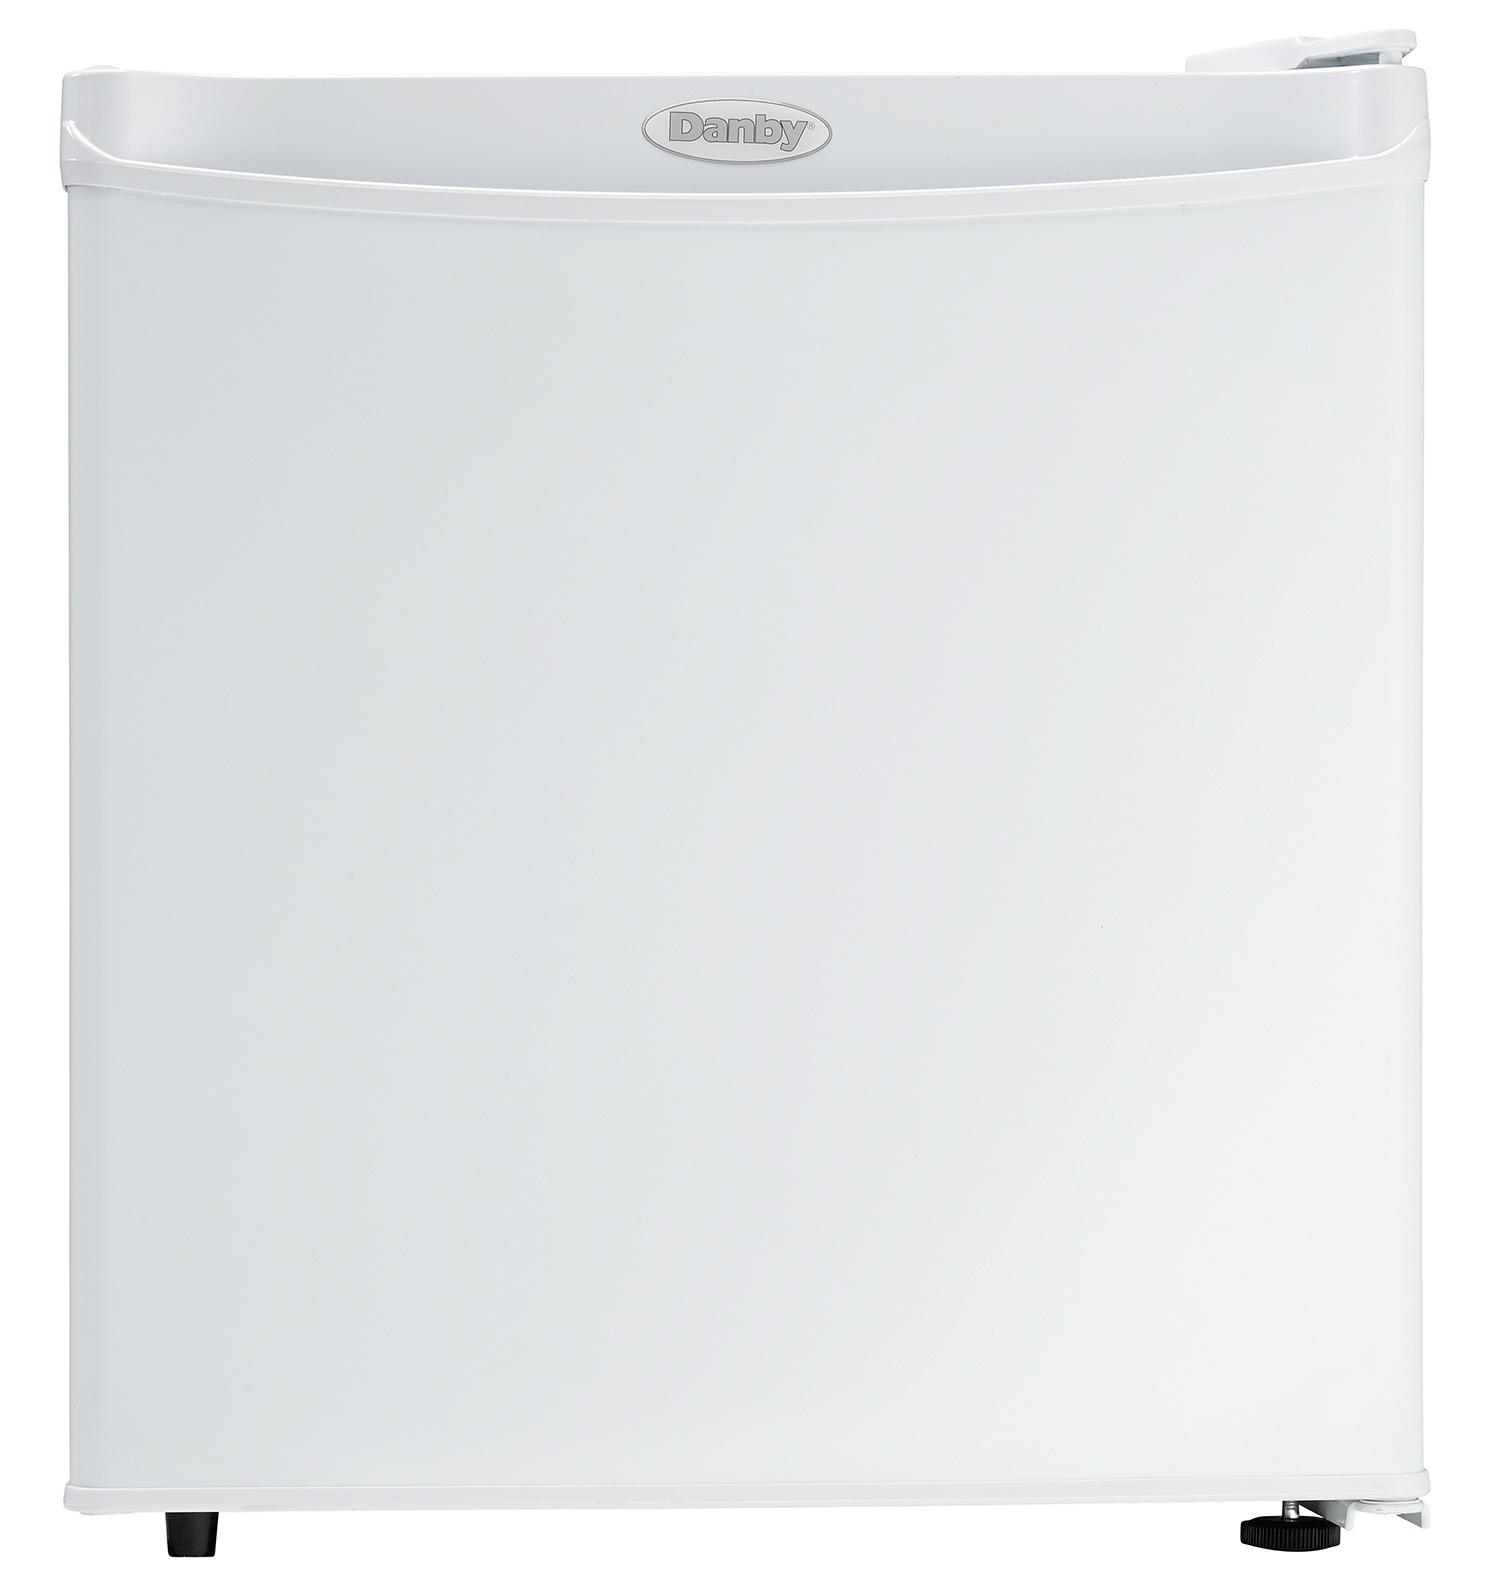 the perfect compact for small living spaces - Danby Mini Fridge